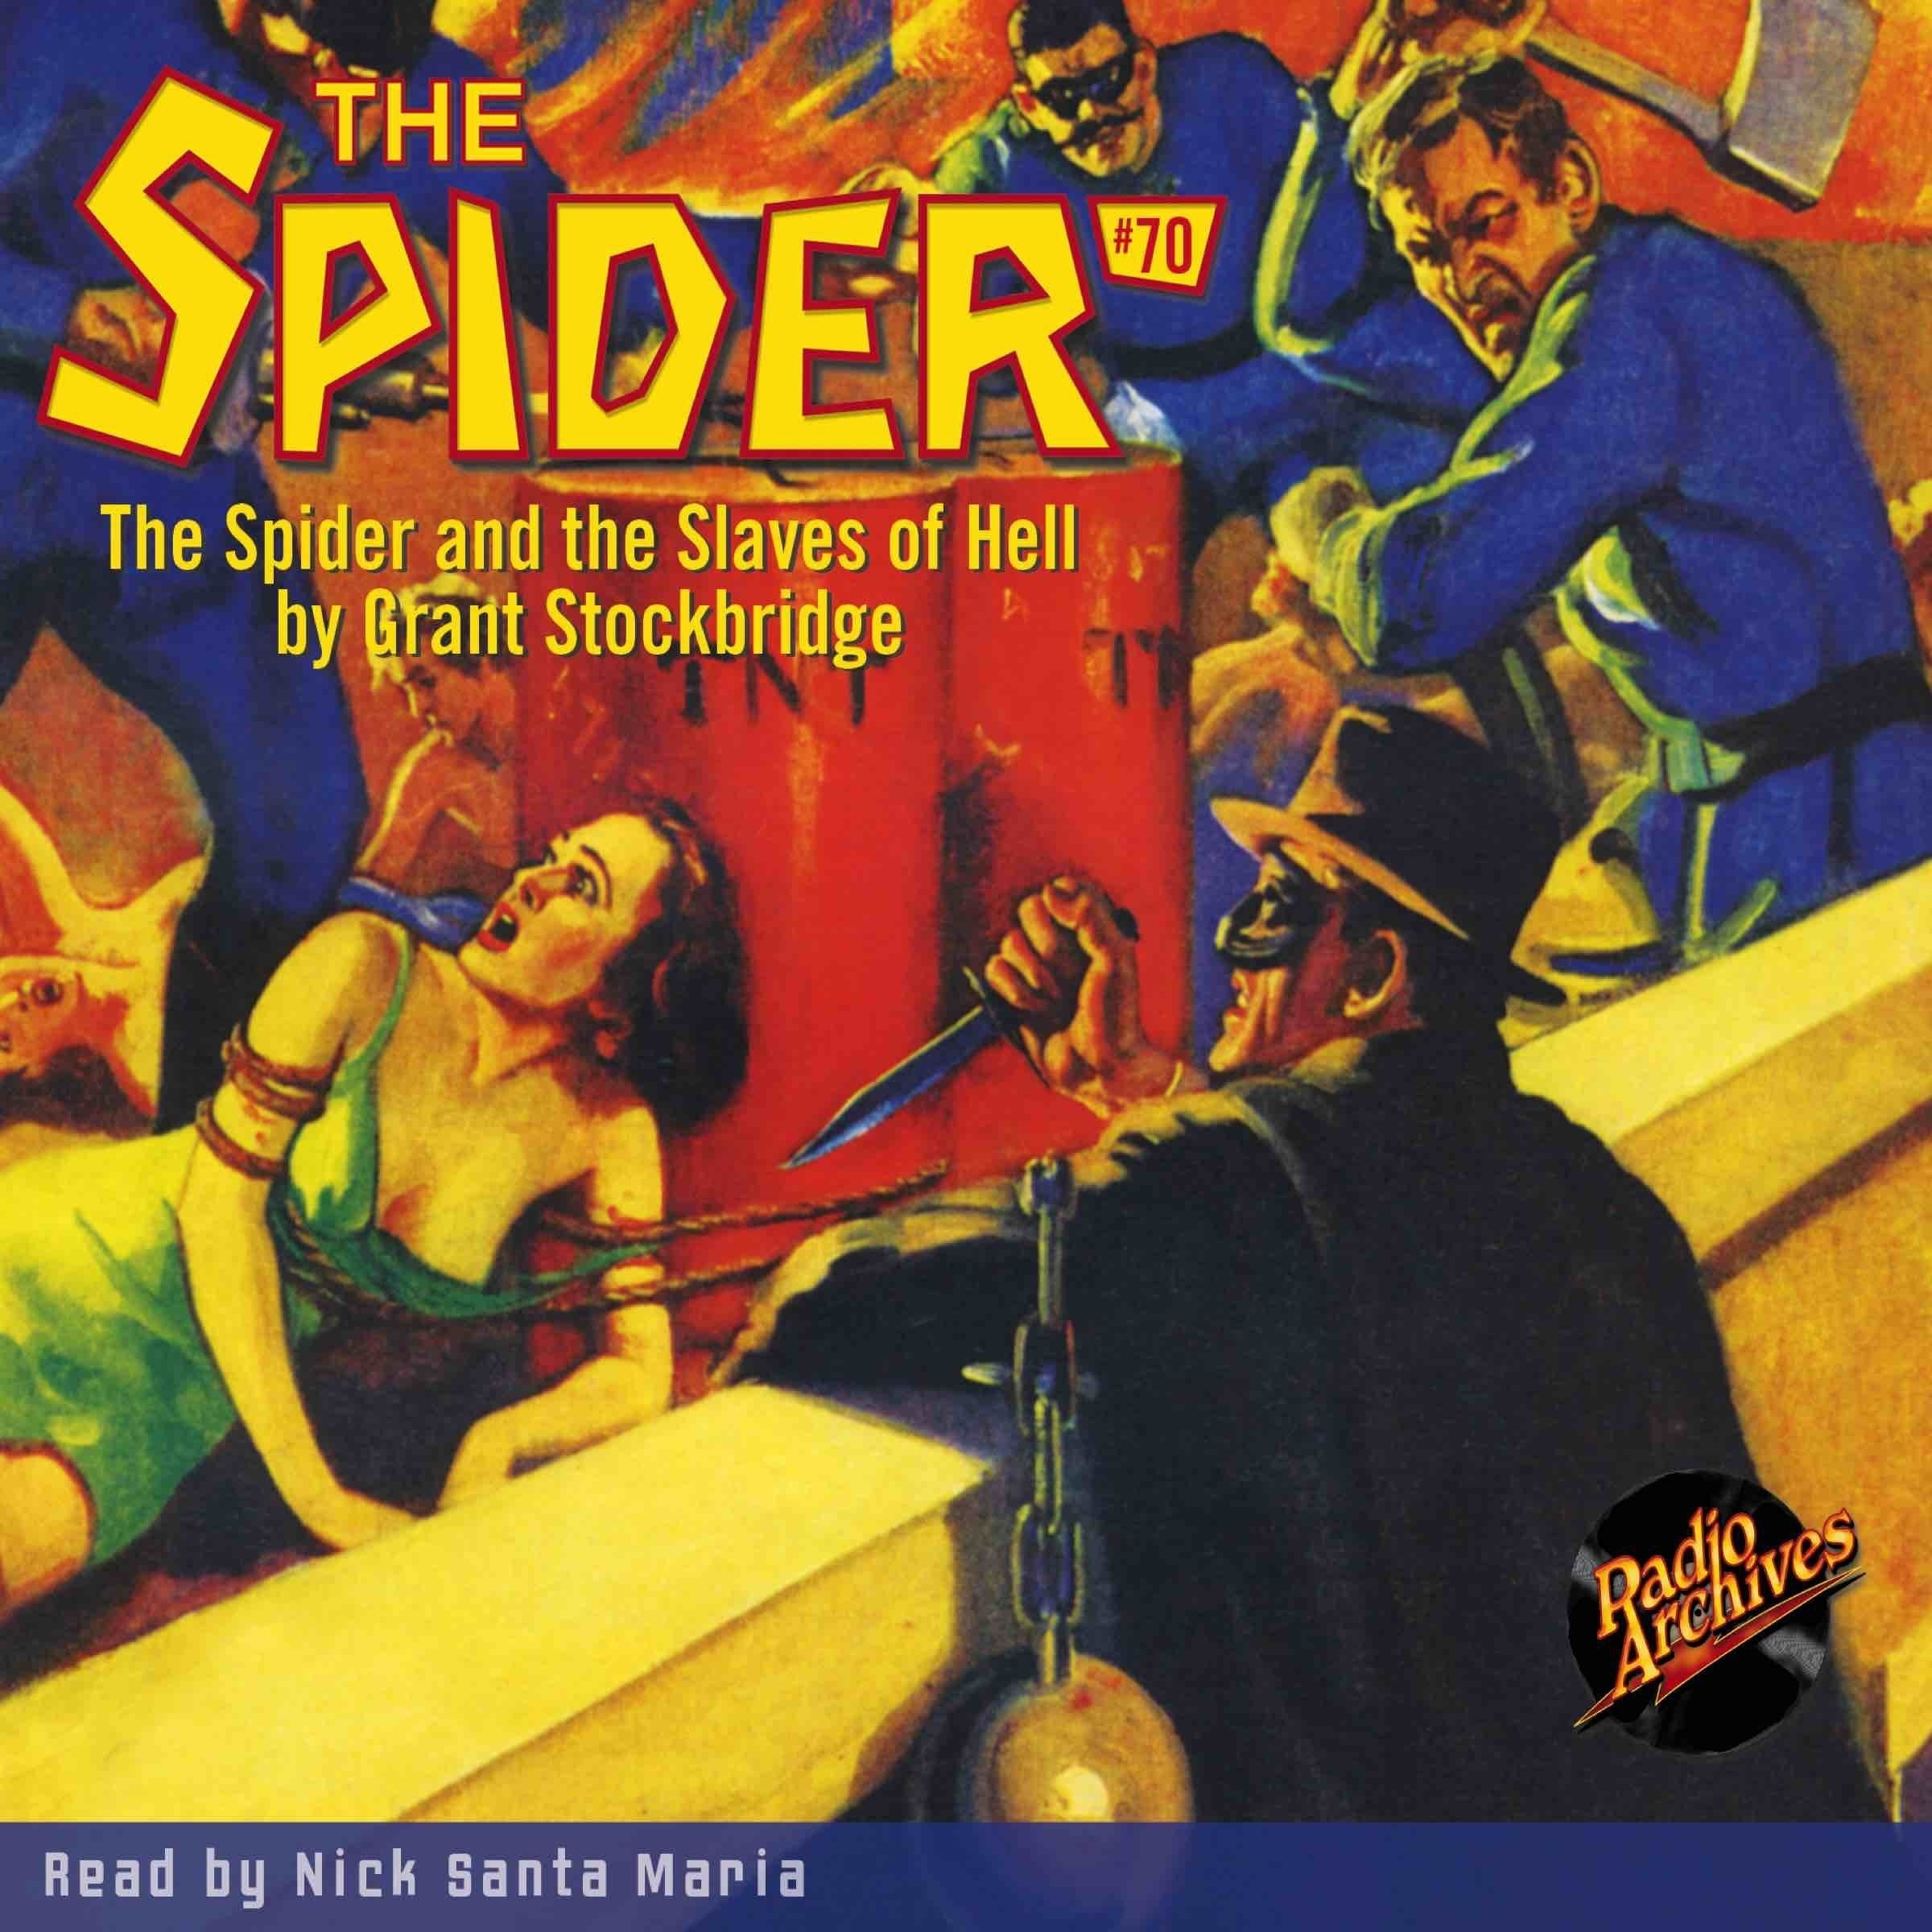 Printable Spider #70, The: The Spider and the Slaves of Hell Audiobook Cover Art